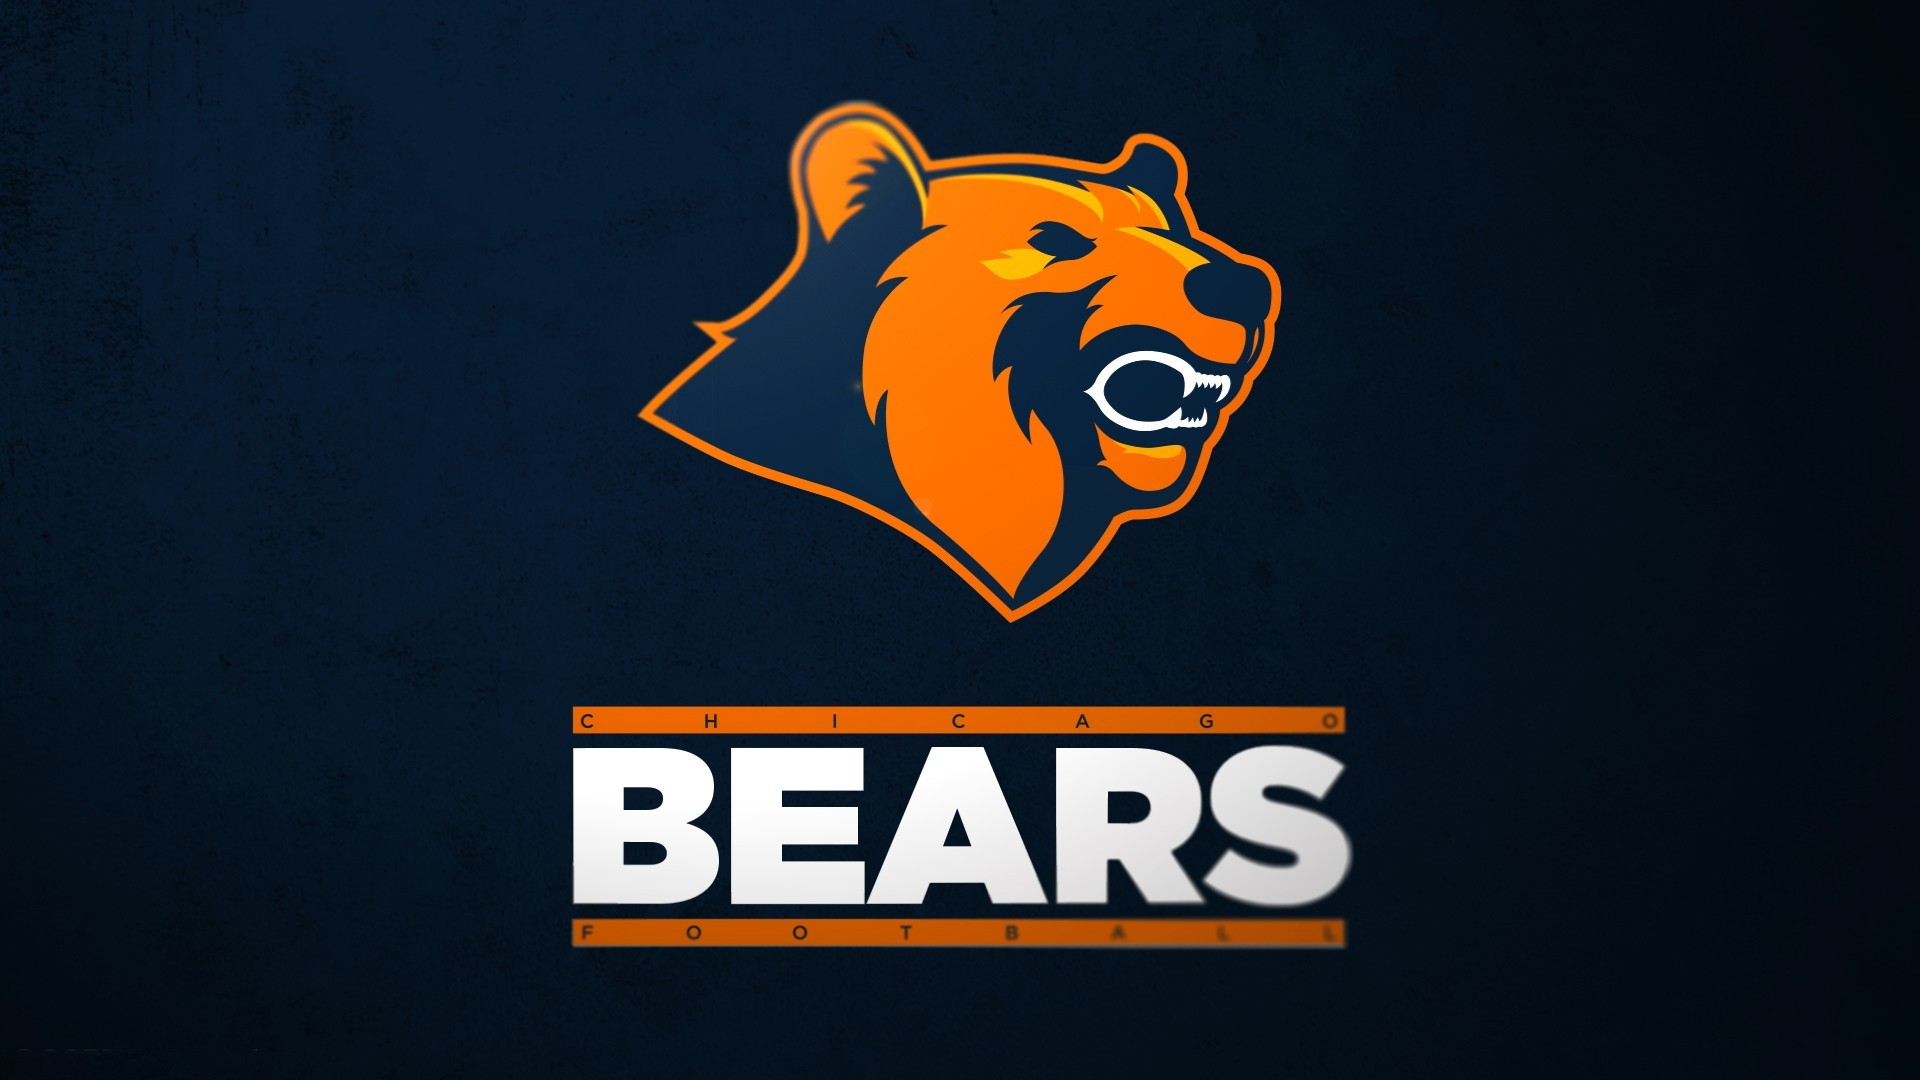 1920x1080 Chicago Bears Wallpaper For Mac Backgrounds